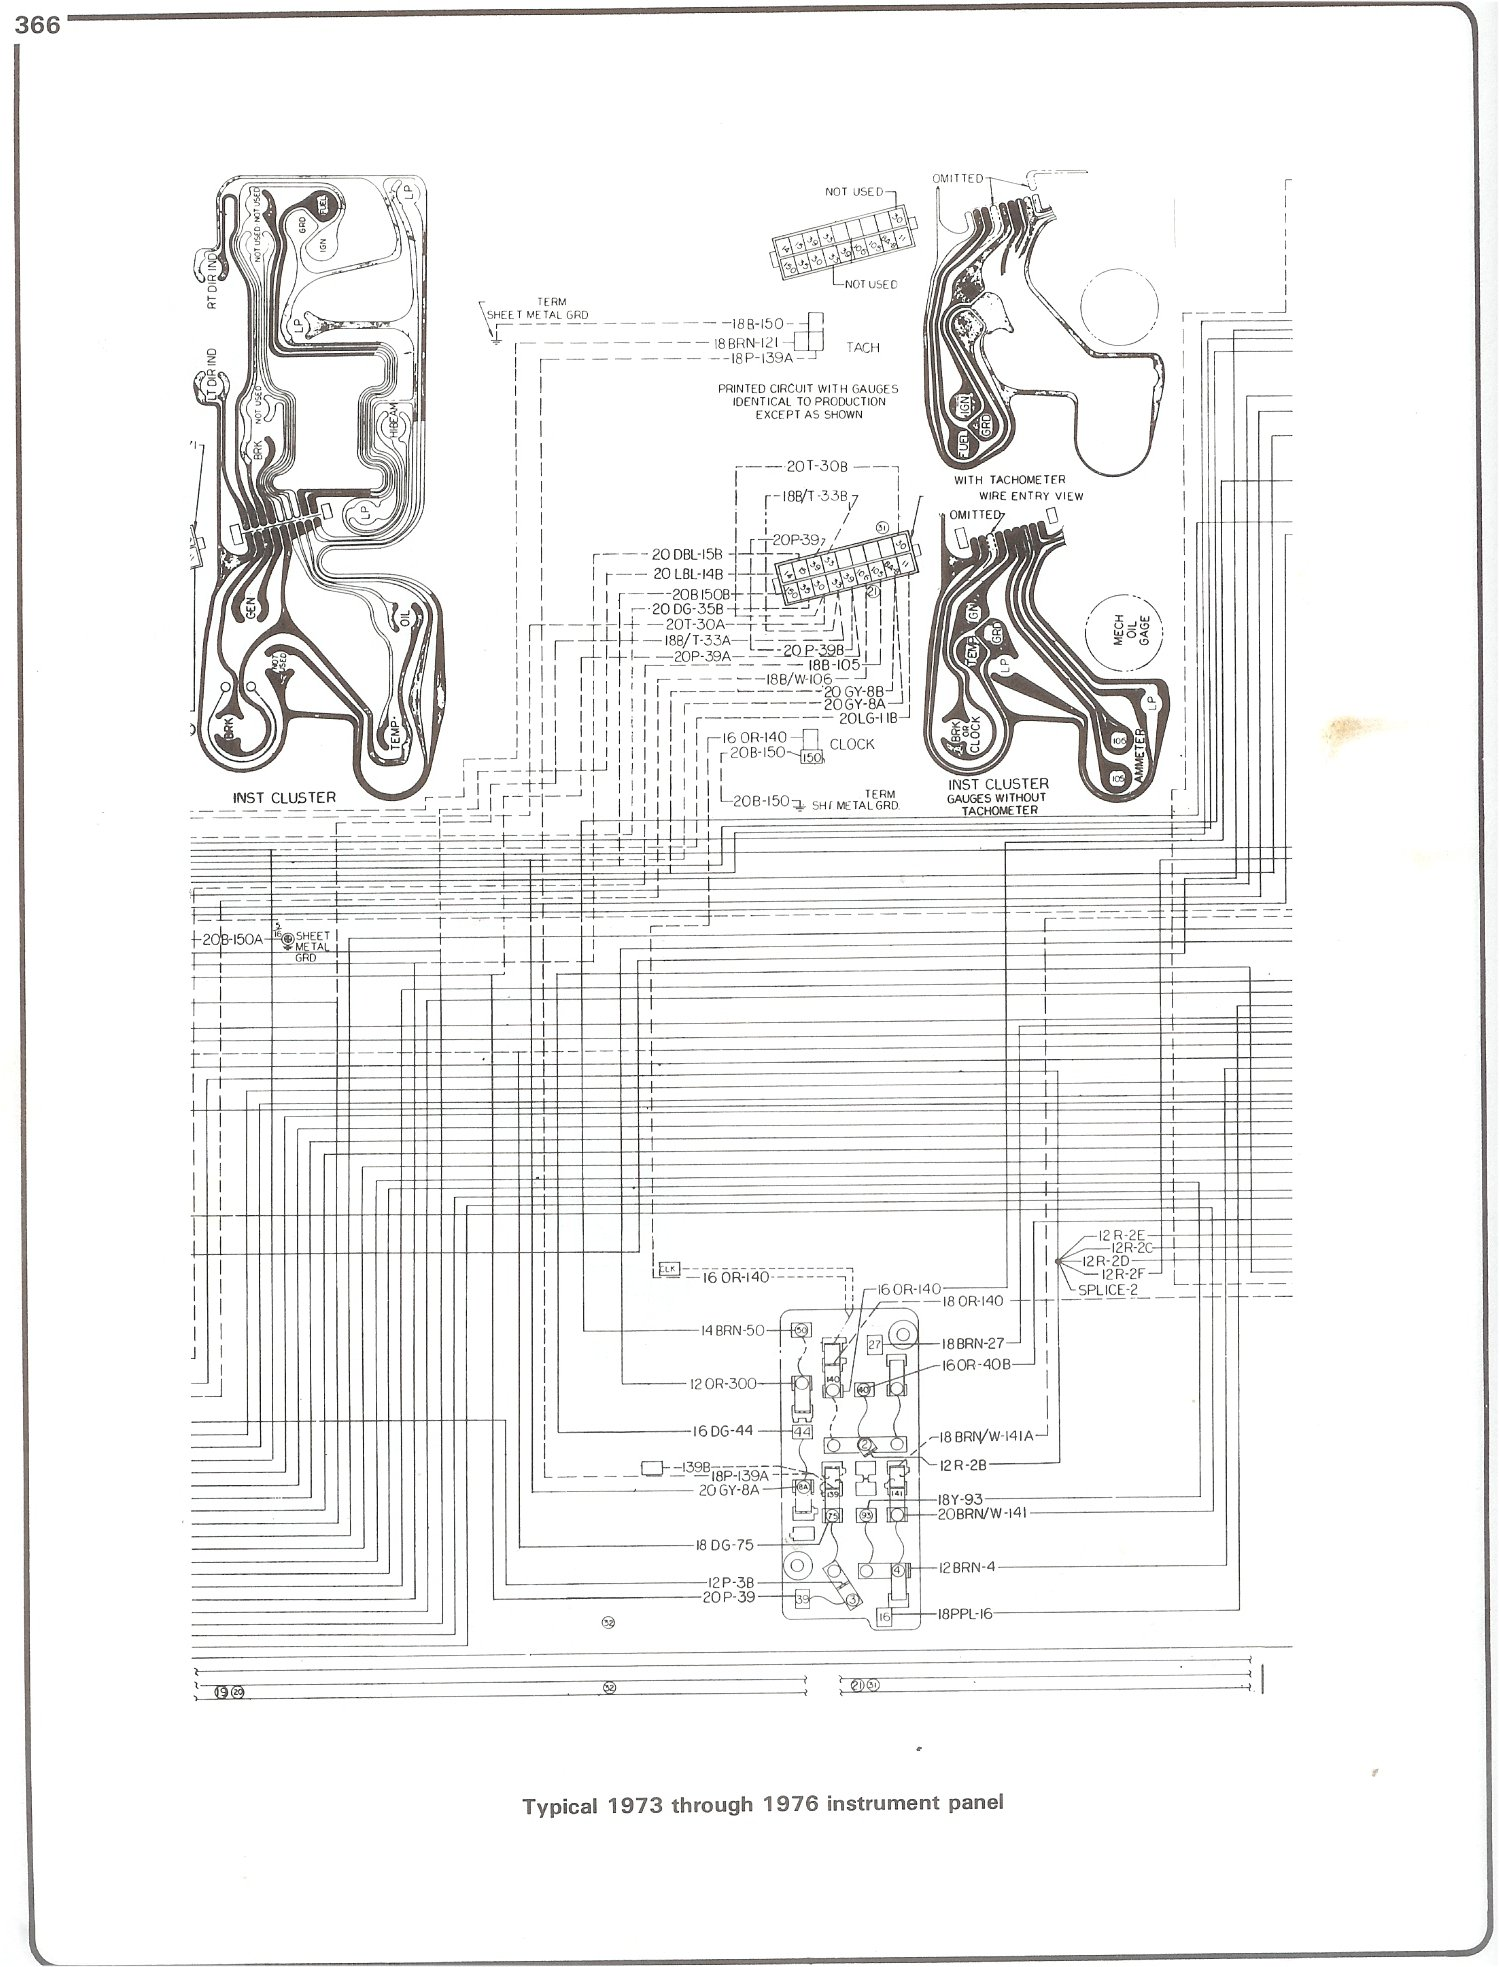 Complete 73 87 Wiring Diagrams 2009 1500 Dodge Ram Headlight Fuse Box Diagram 76 Instrument Cluster